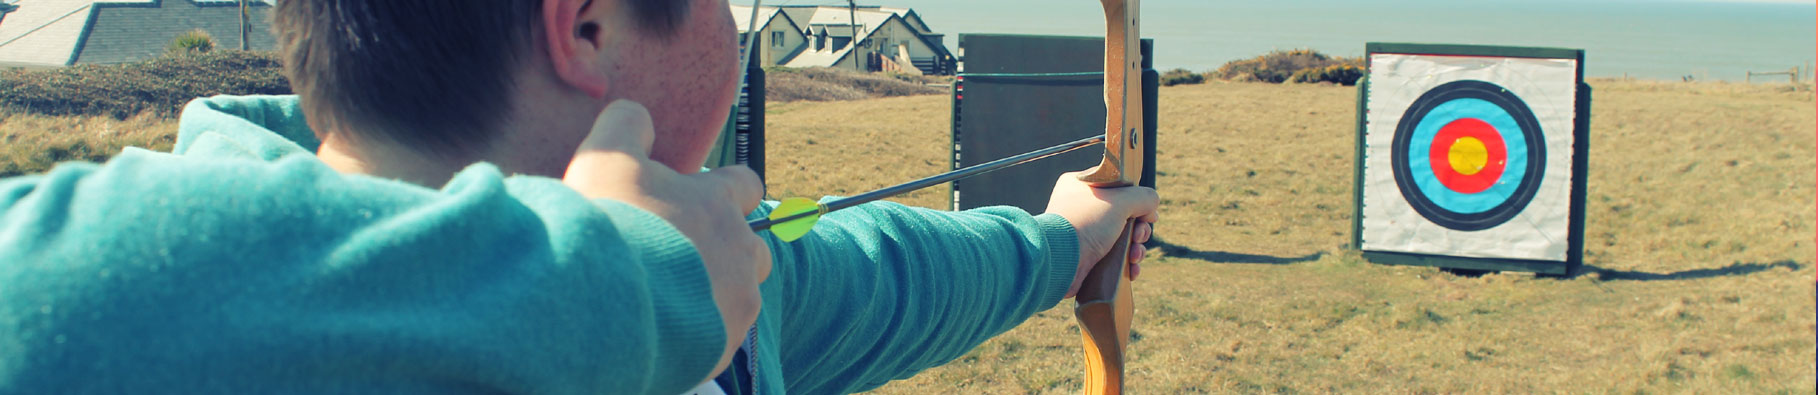 Archery activity at Shoreline in Bude, Cornwall